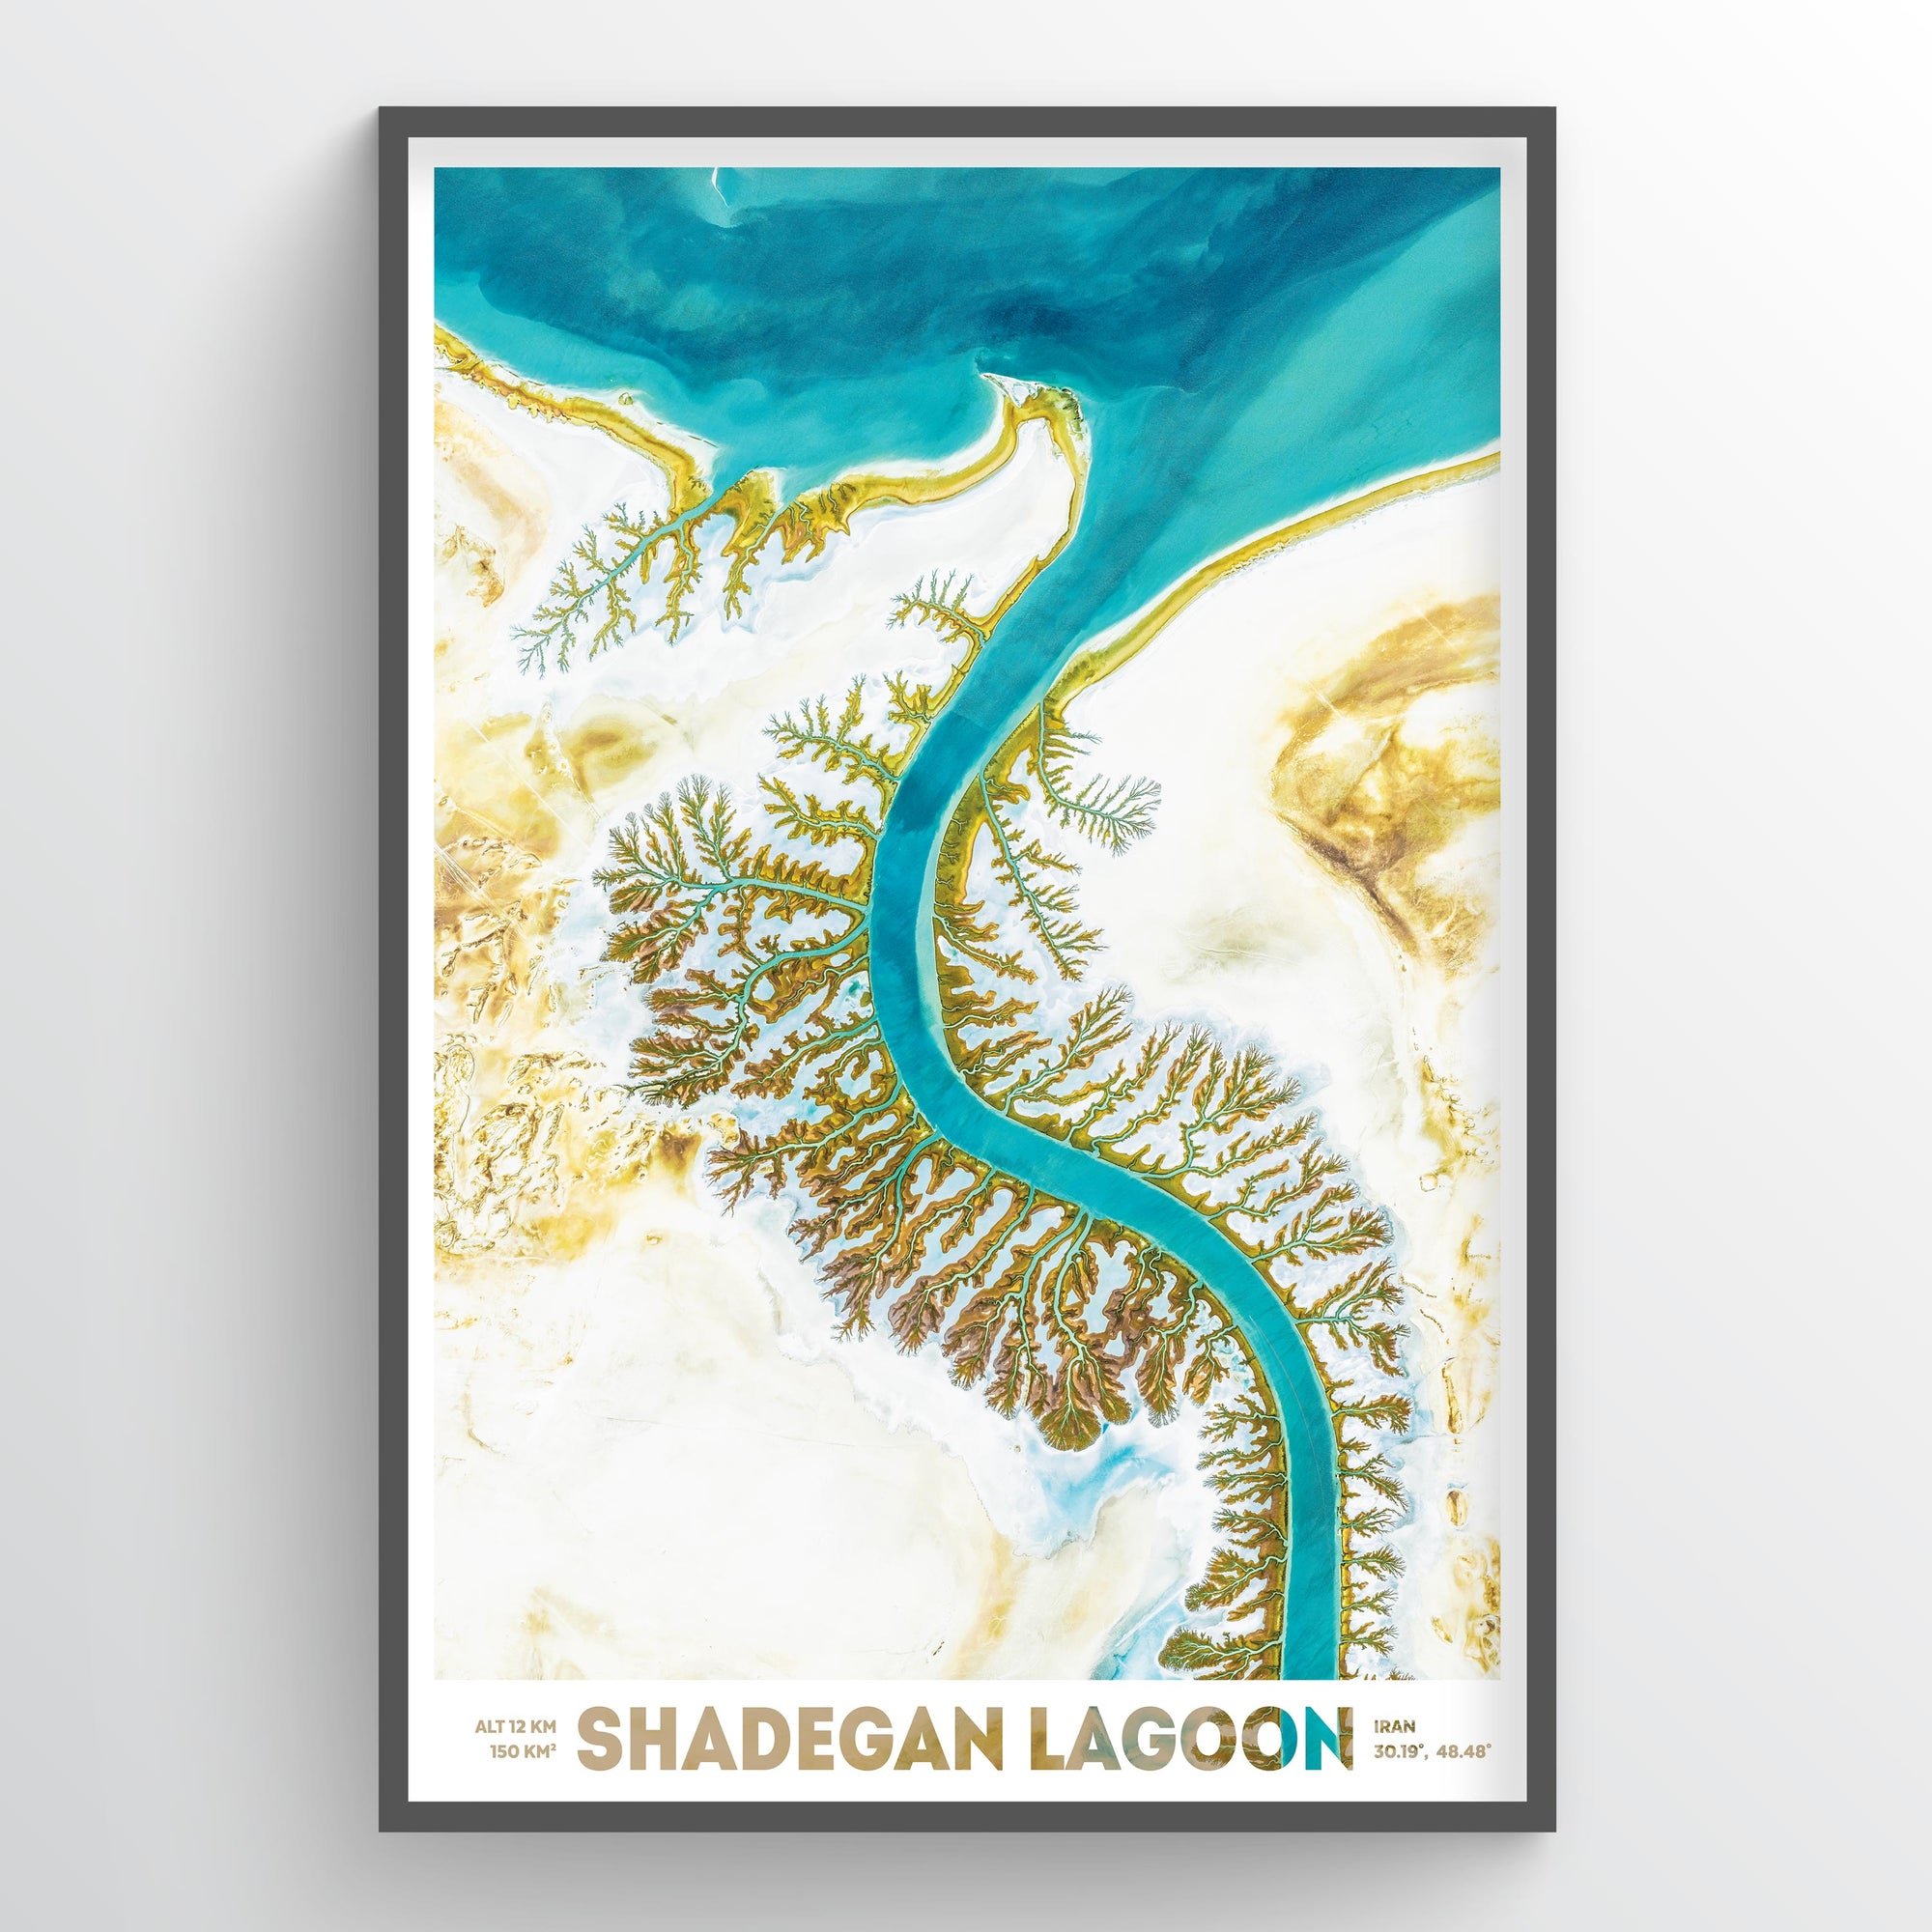 Shadegan Lagoon